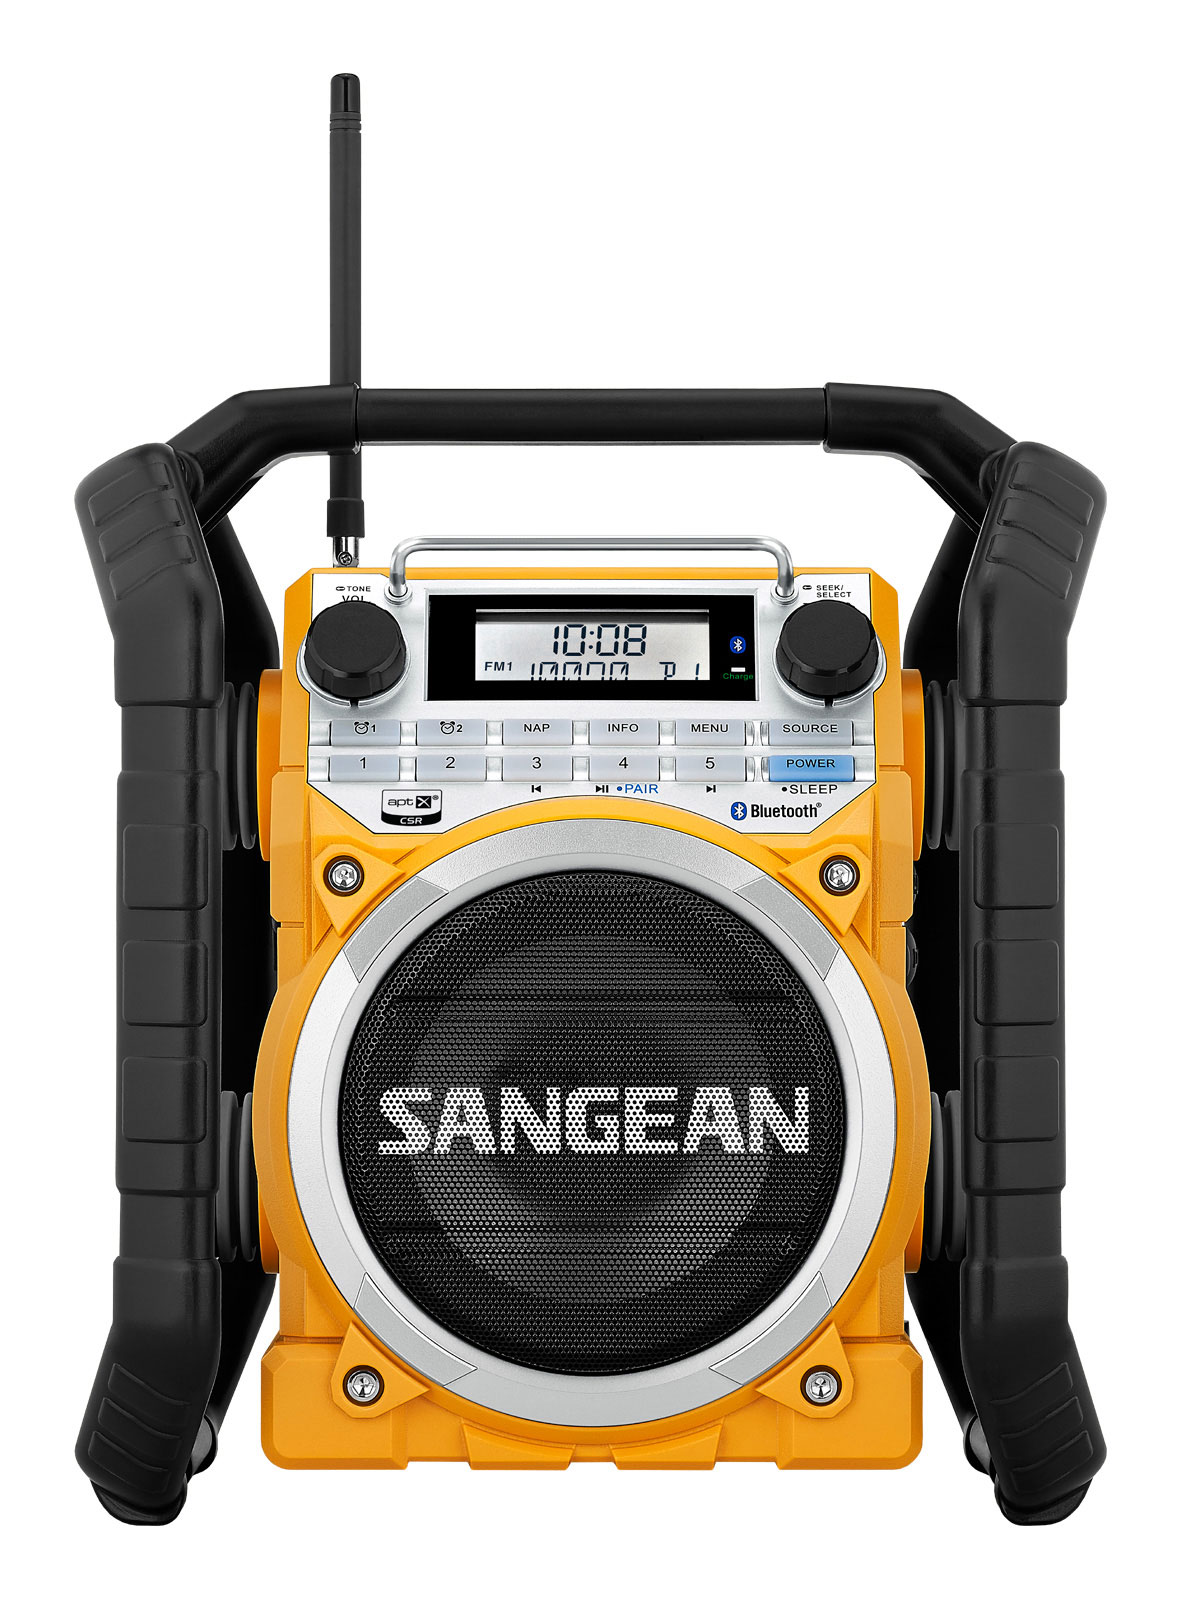 Sangean Utility Radio bluetoot